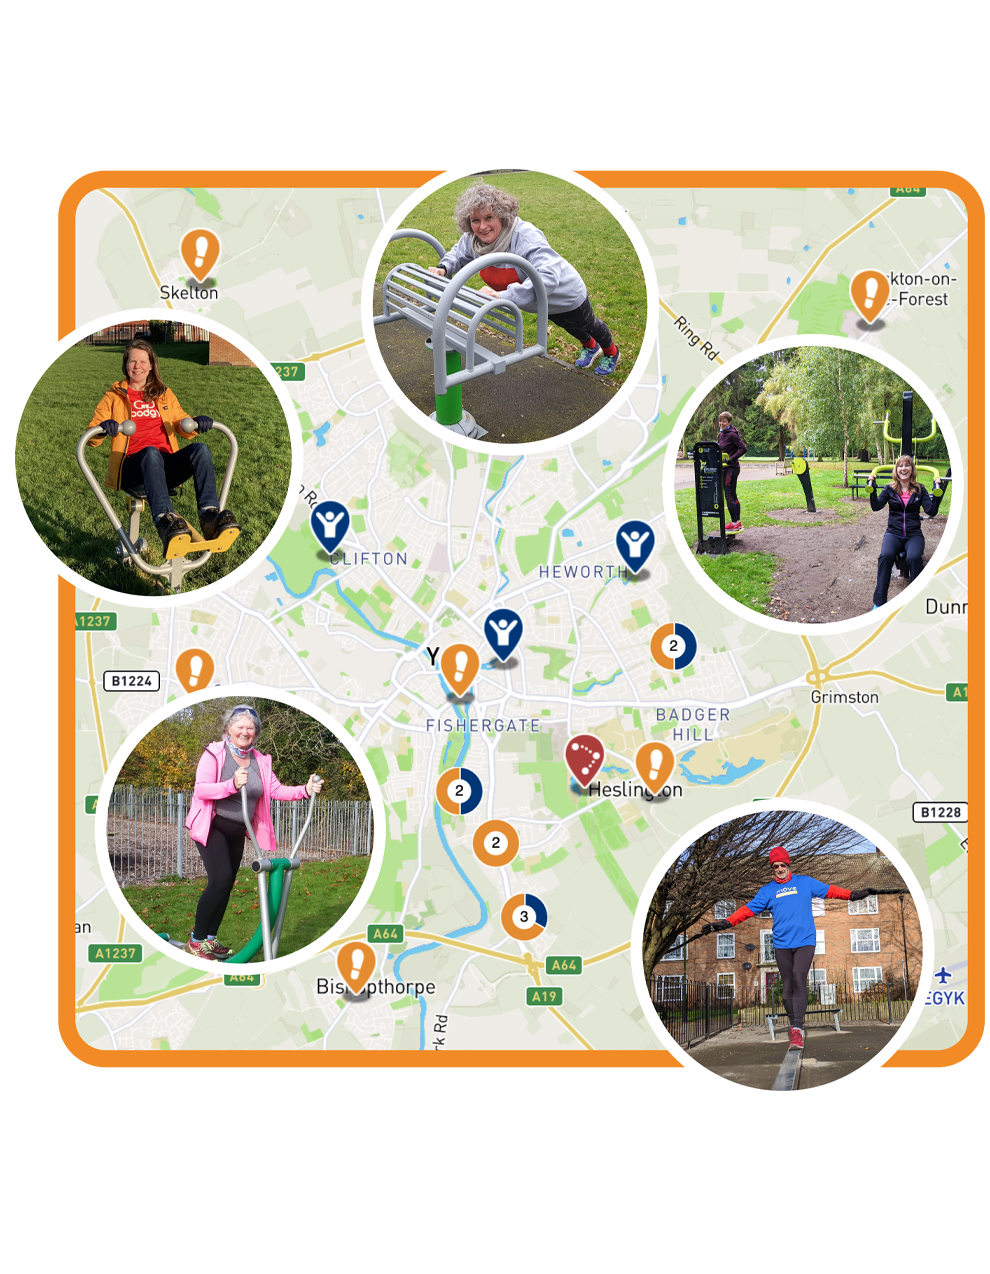 Graphic of Move Map in York area, highlighting outdoor gyms, trim trails and walks